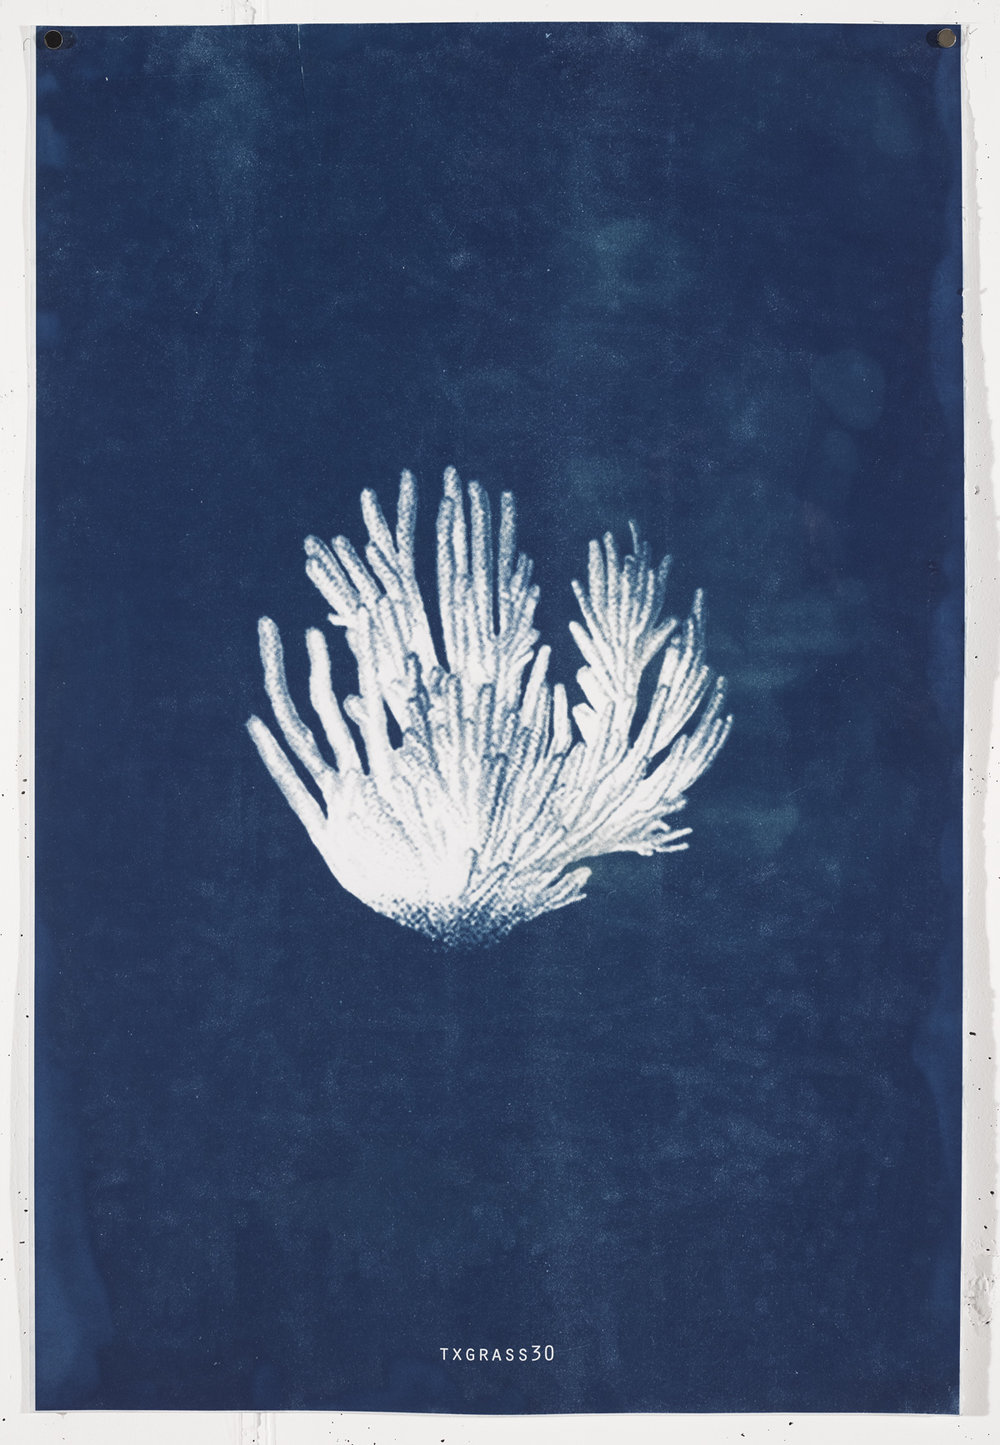 TXGRASS 2017 Unique cyanotype print on Frabriano No.5. 90.4cm x 61cm